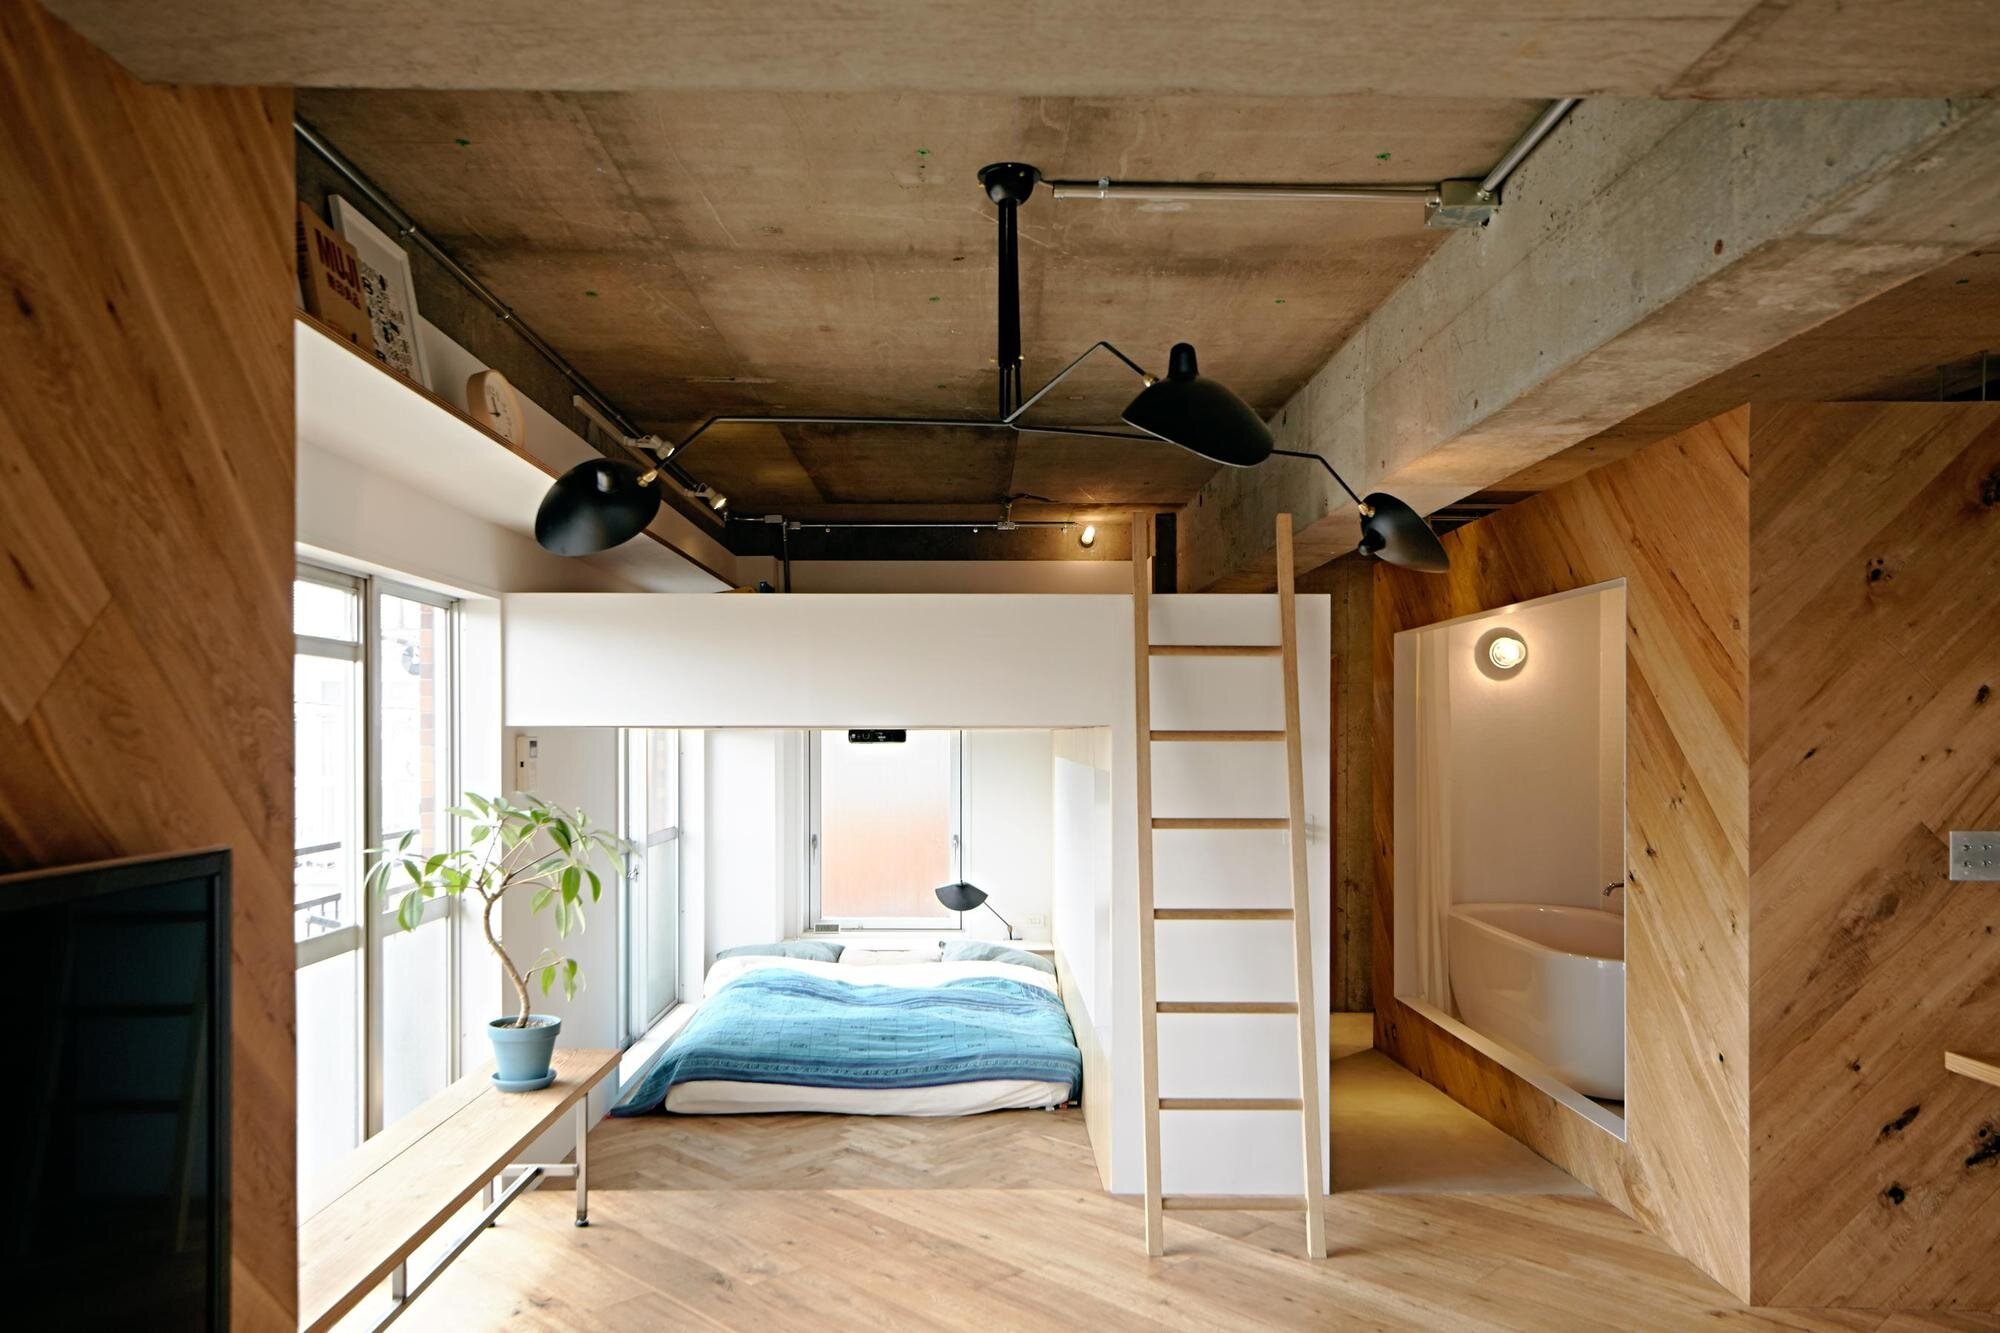 Tenhachi House - .8 Tenhachi Architect & Interior Design - Tokyo - Bedroom - Humble Homes